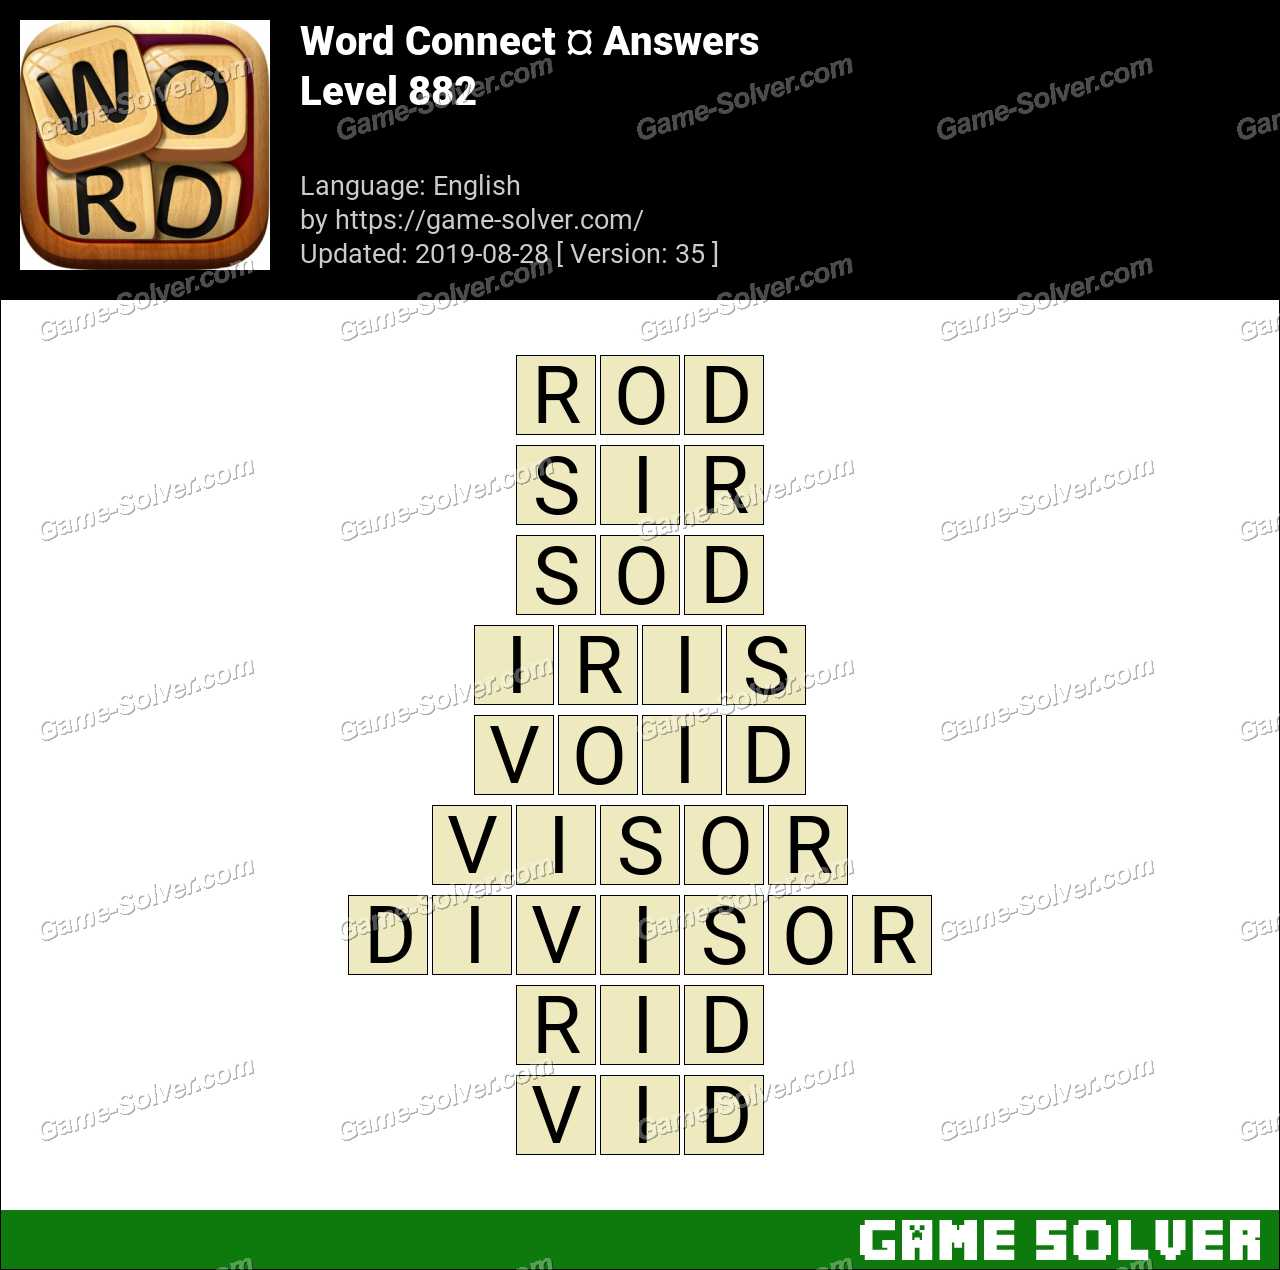 Word Connect Level 882 Answers